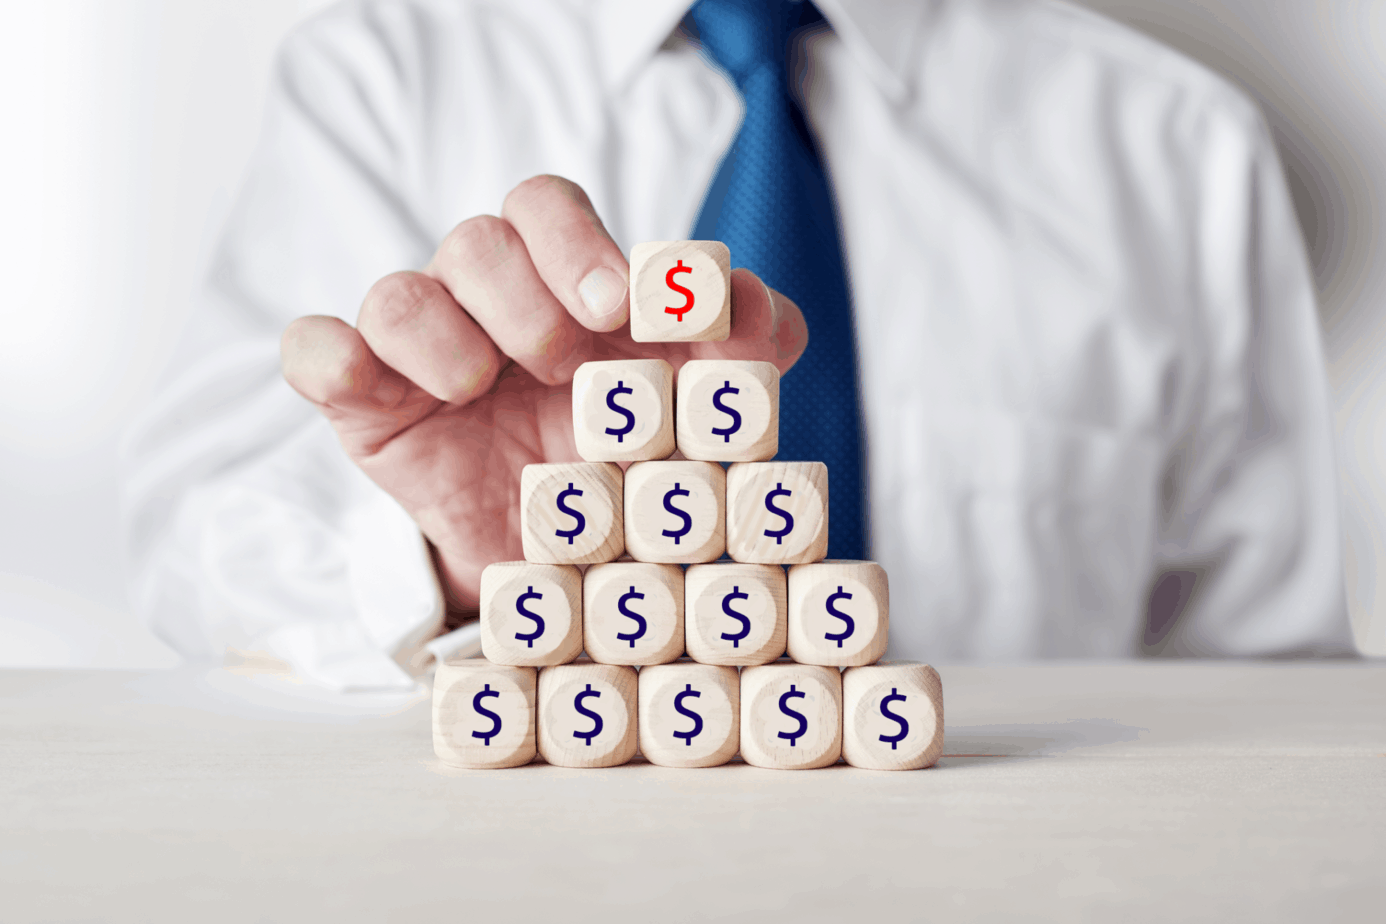 businessman placing a wooden cube with check percent or percentage symbol on top of tiered wooden cubes 218070076